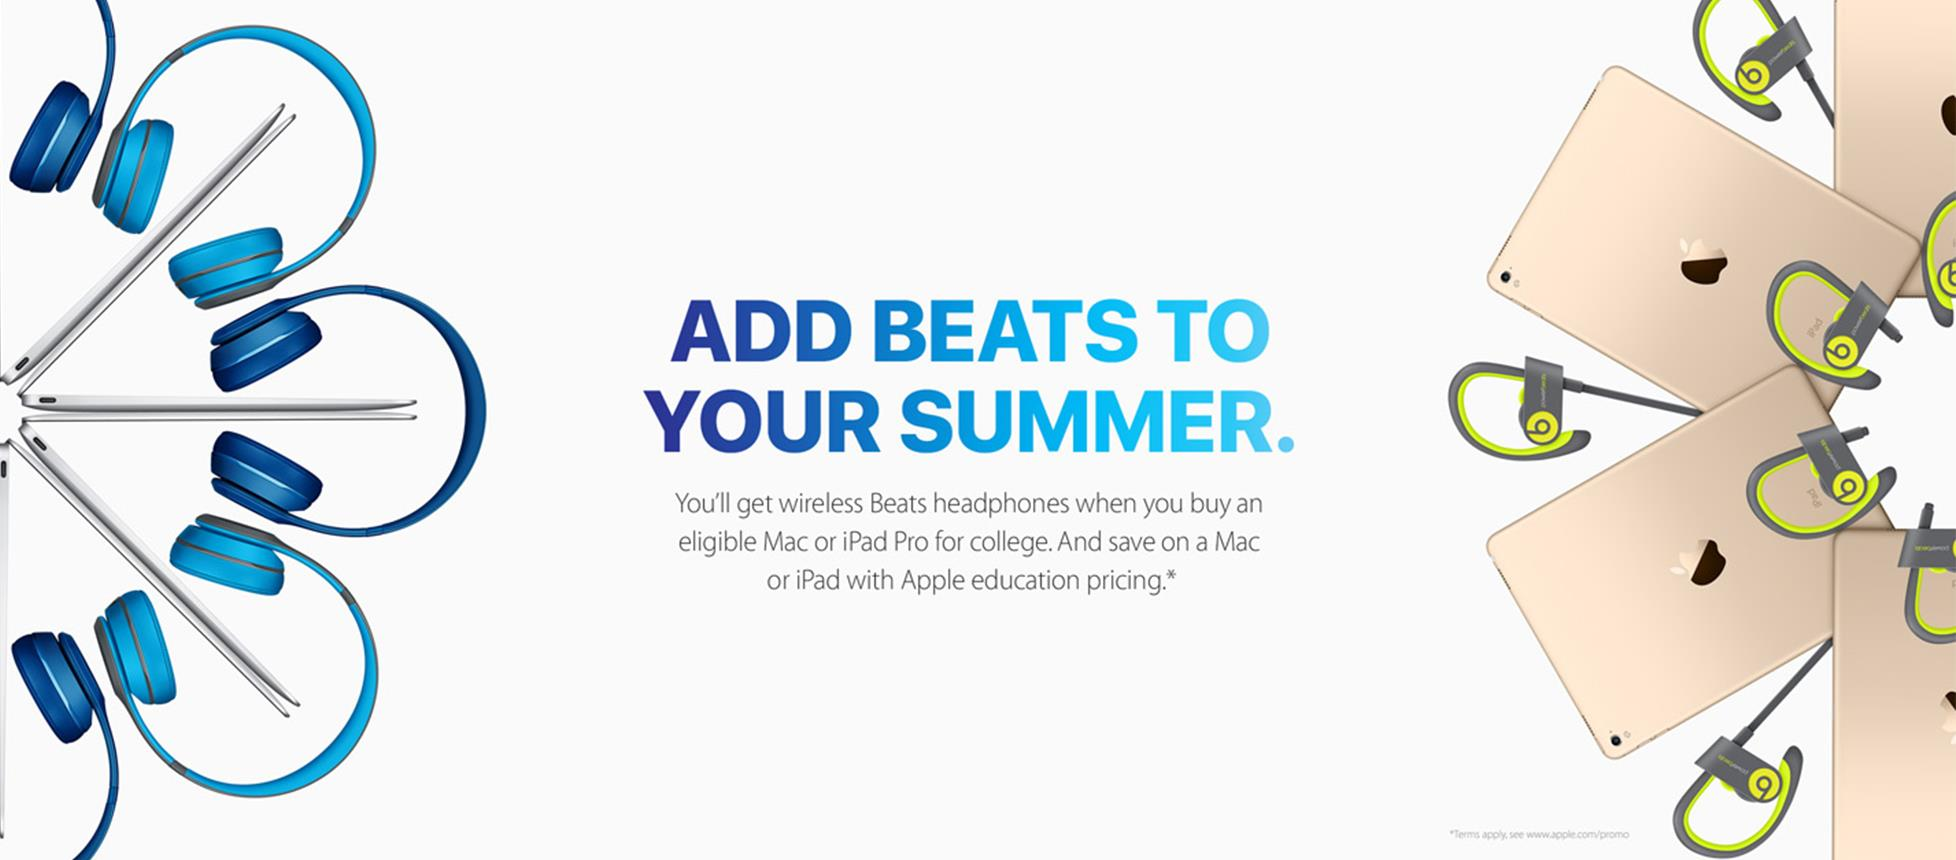 ADD BEATS TO YOUR SUMMER.